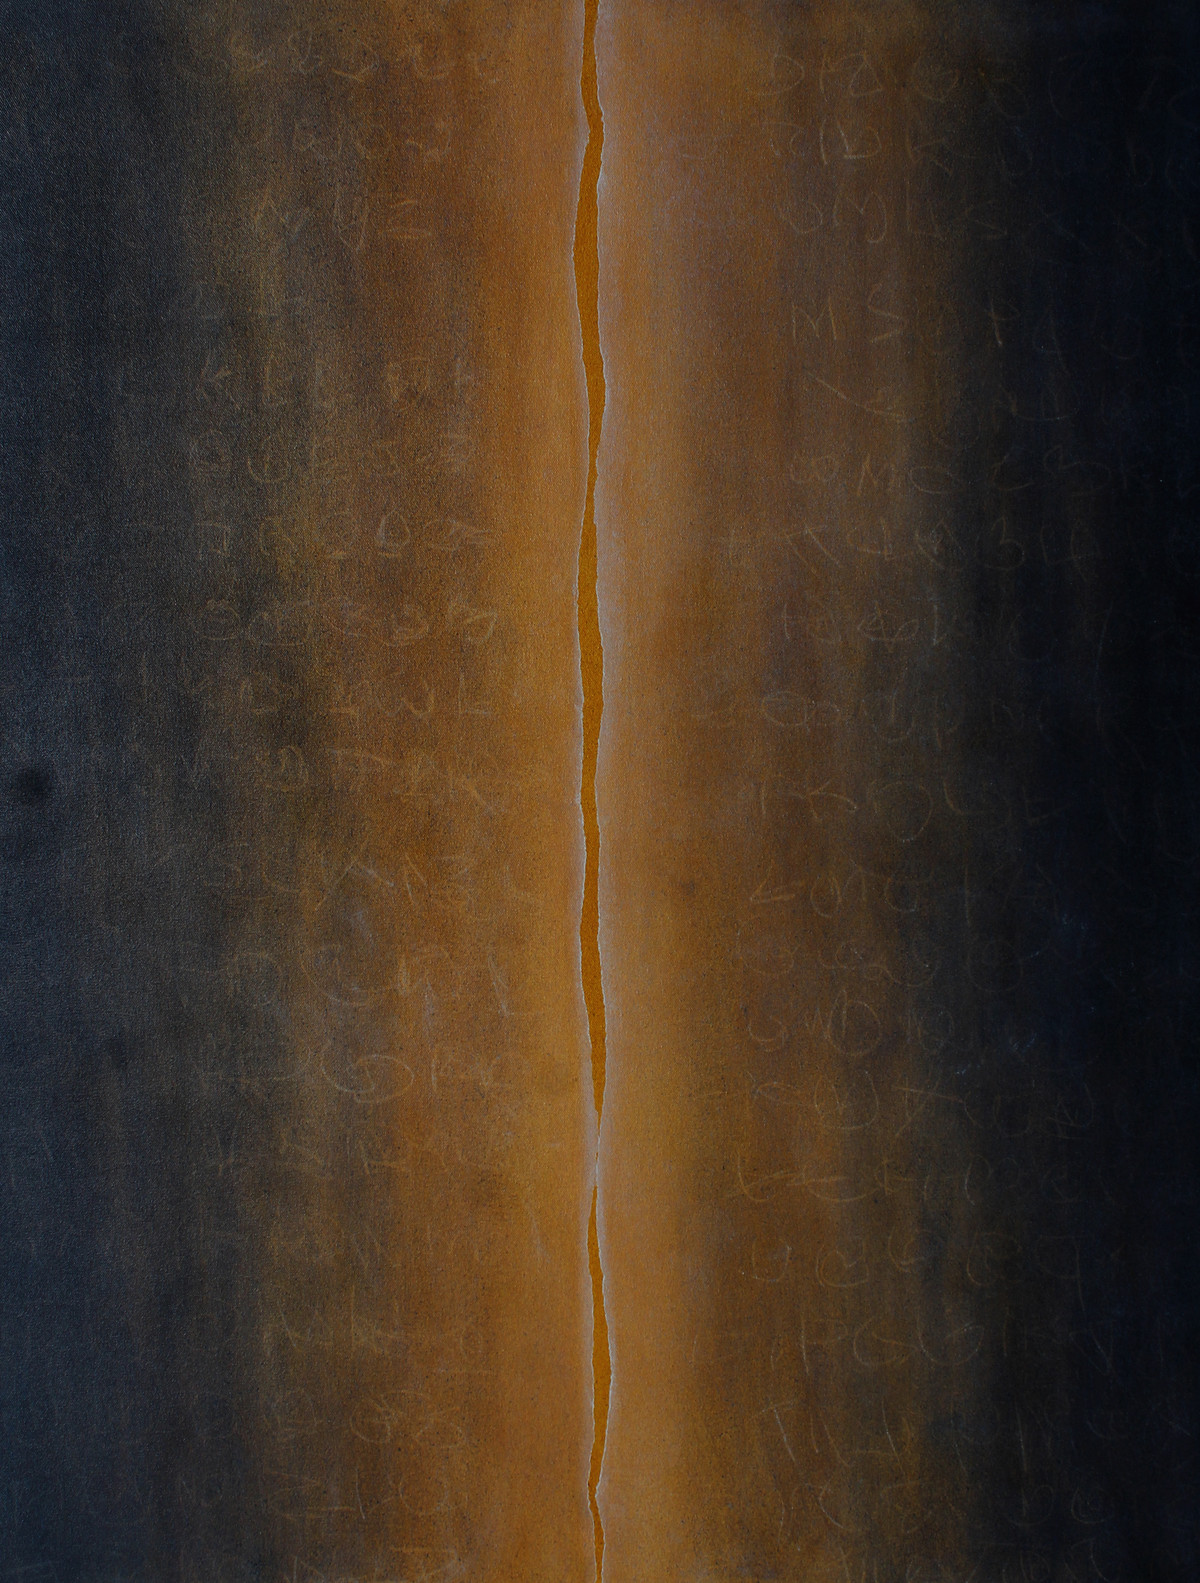 Music of soil IV by pradeep ahirwar, Abstract Painting, Mixed Media on Canvas, Dune color